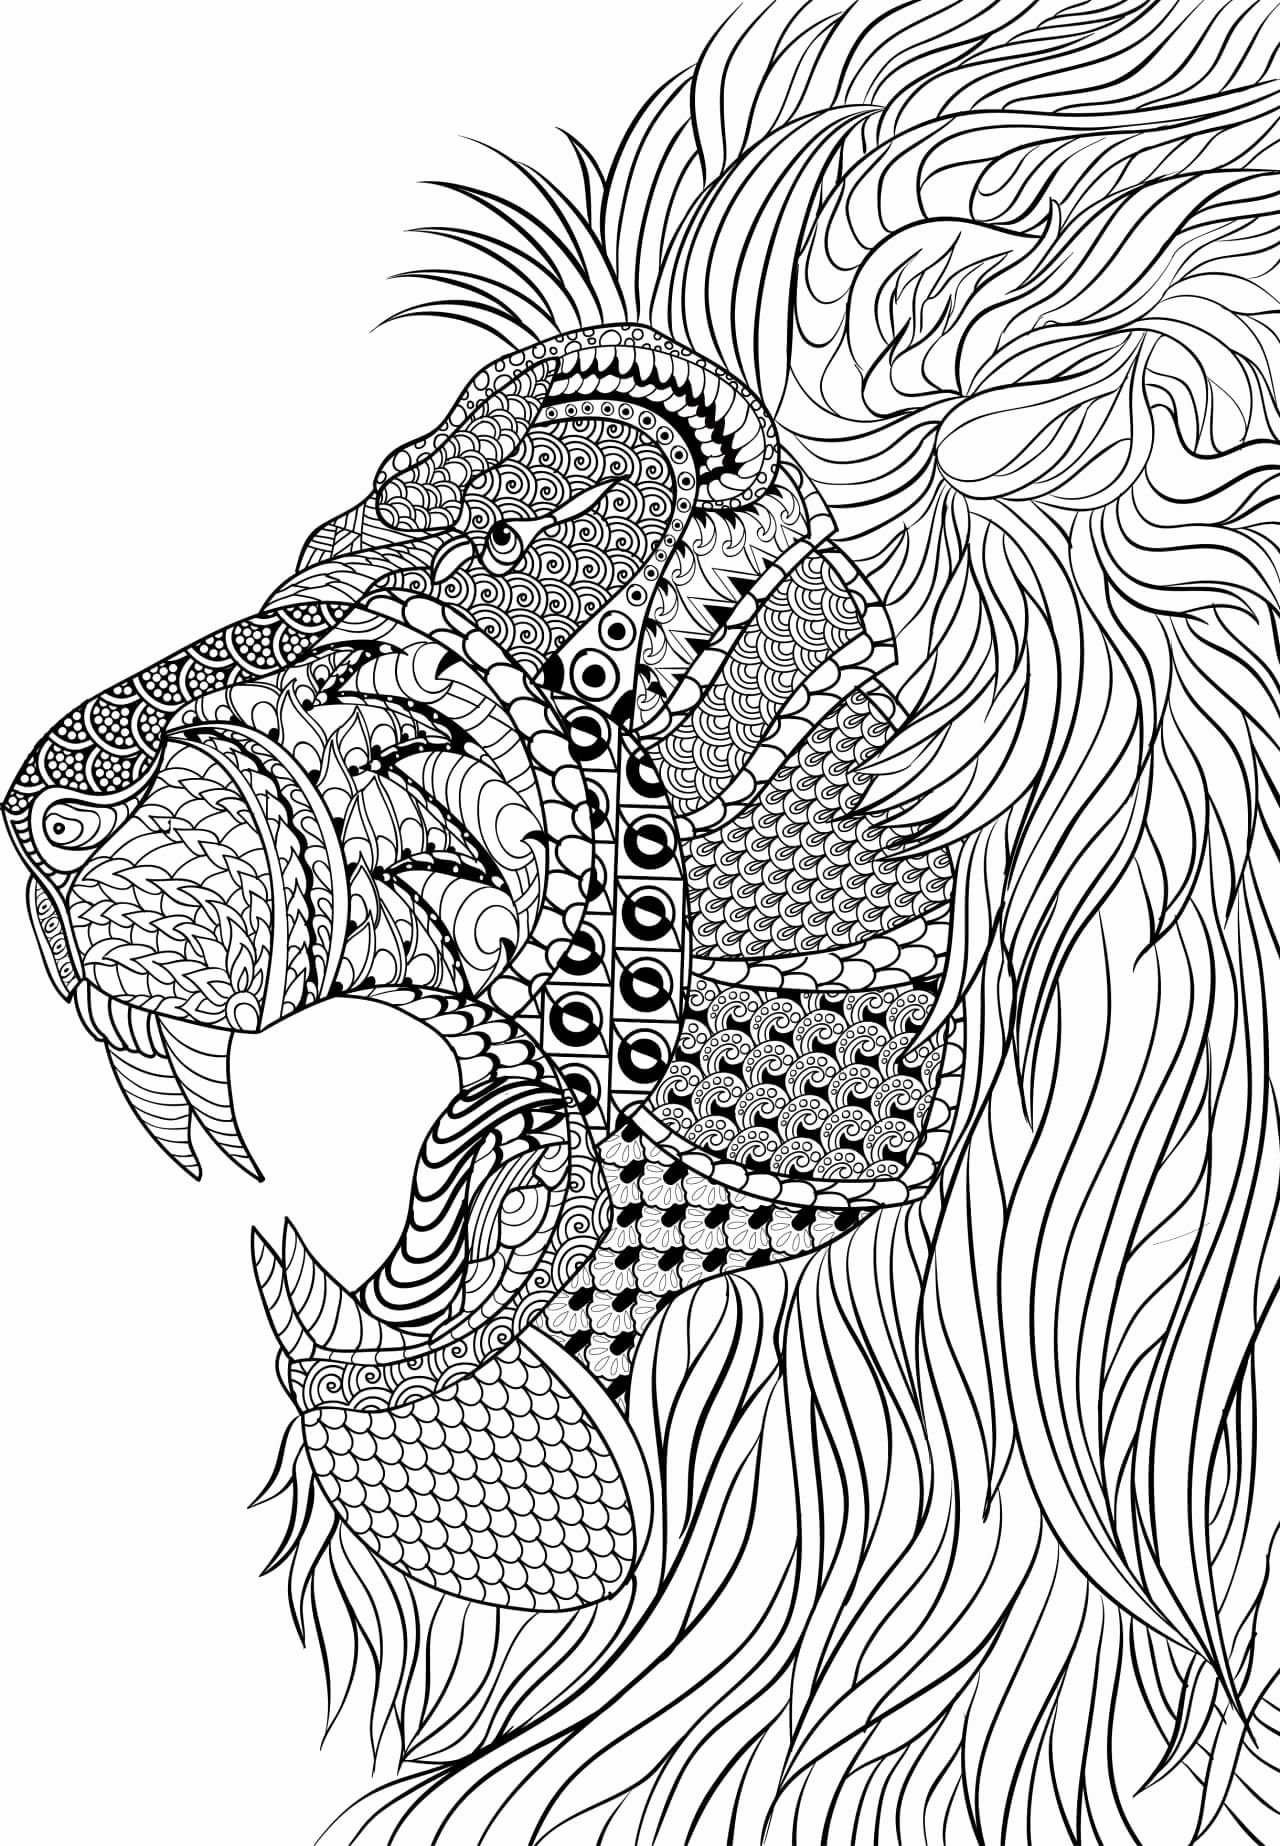 Coloring Pages Of Animals Hard New Coloring Pages For Adults Difficult Animals 4 In 2020 Lion Coloring Pages Animal Coloring Pages Animal Coloring Books